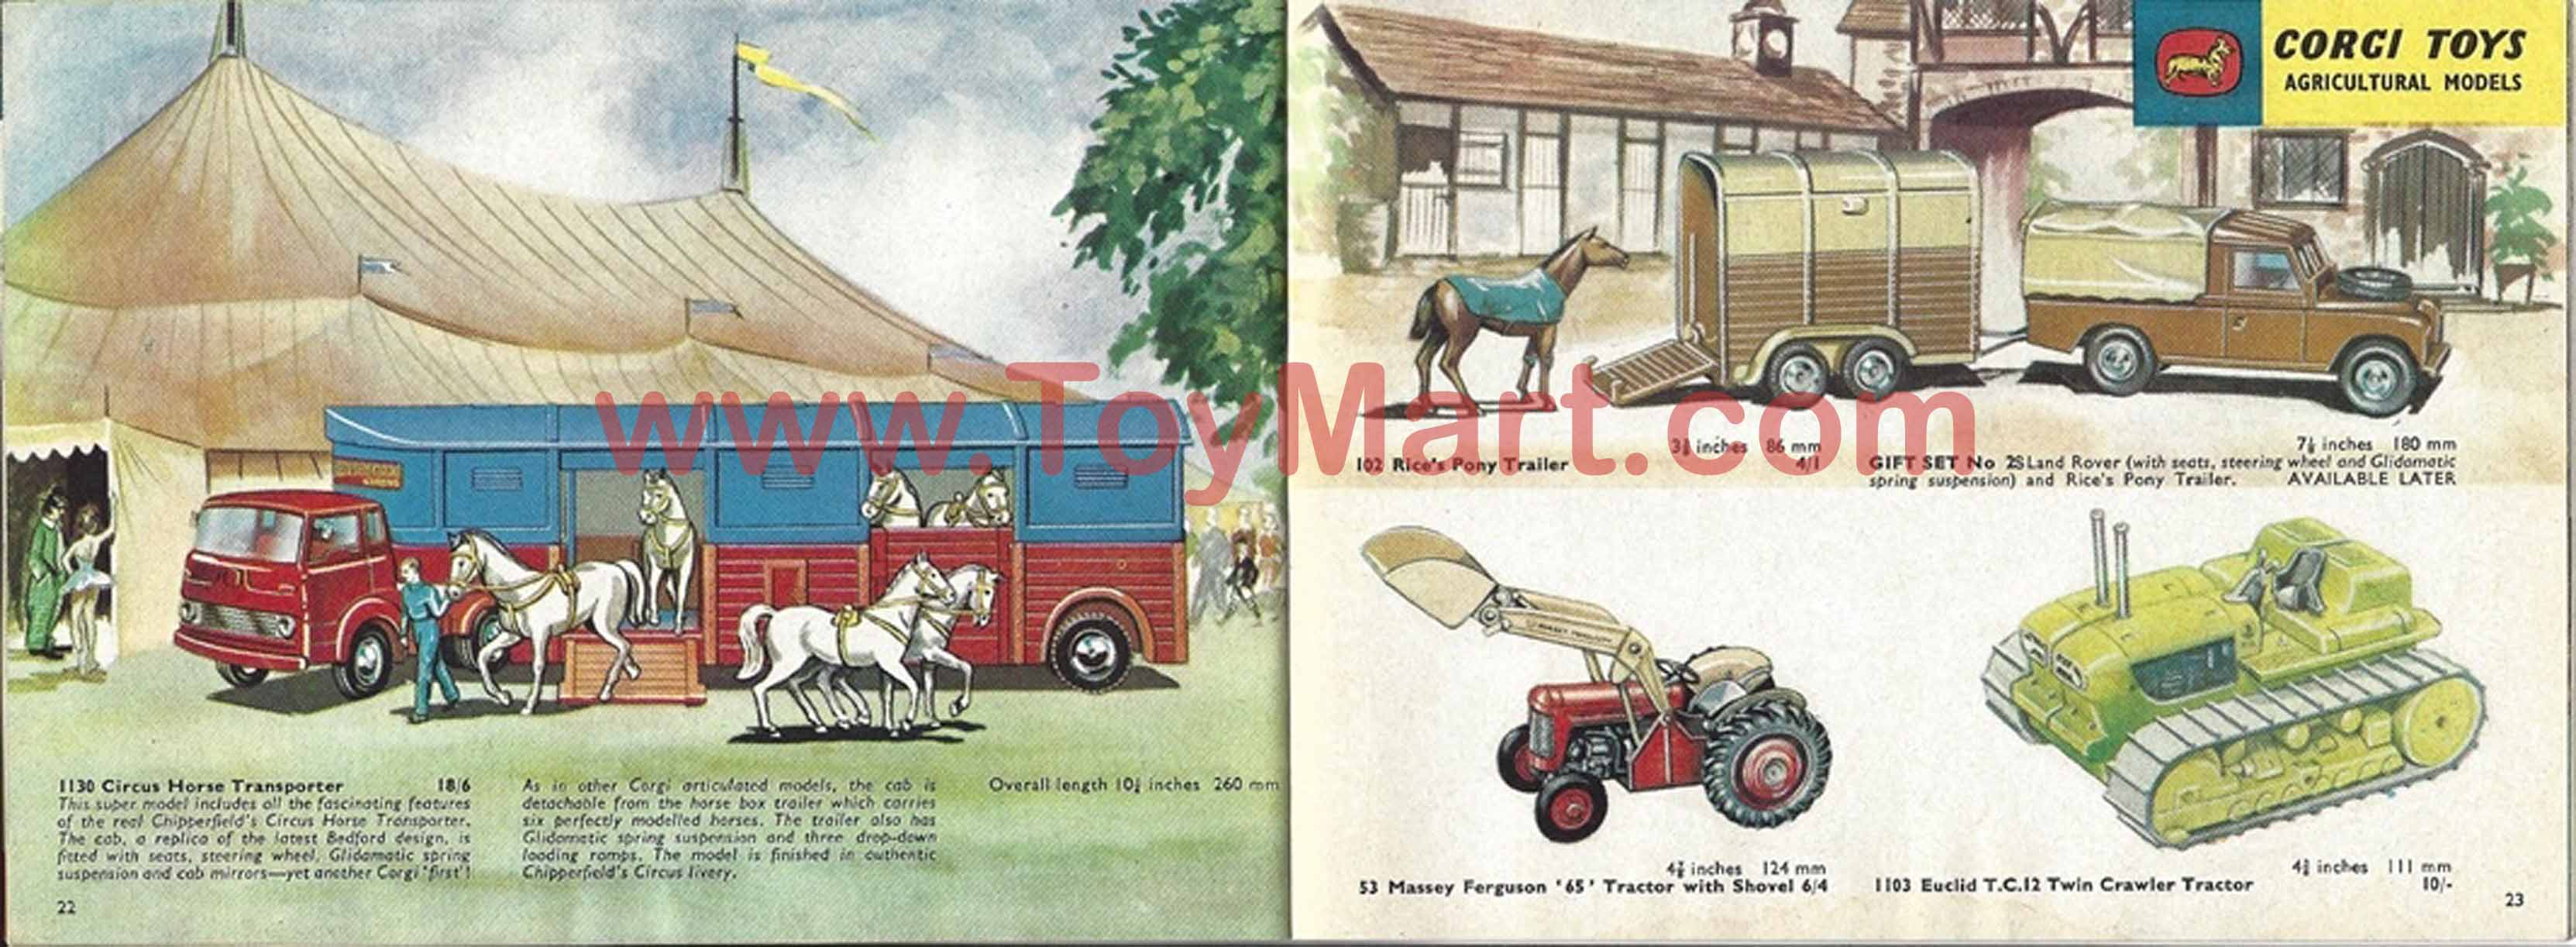 Corgi toys catalogue 1963 - Red